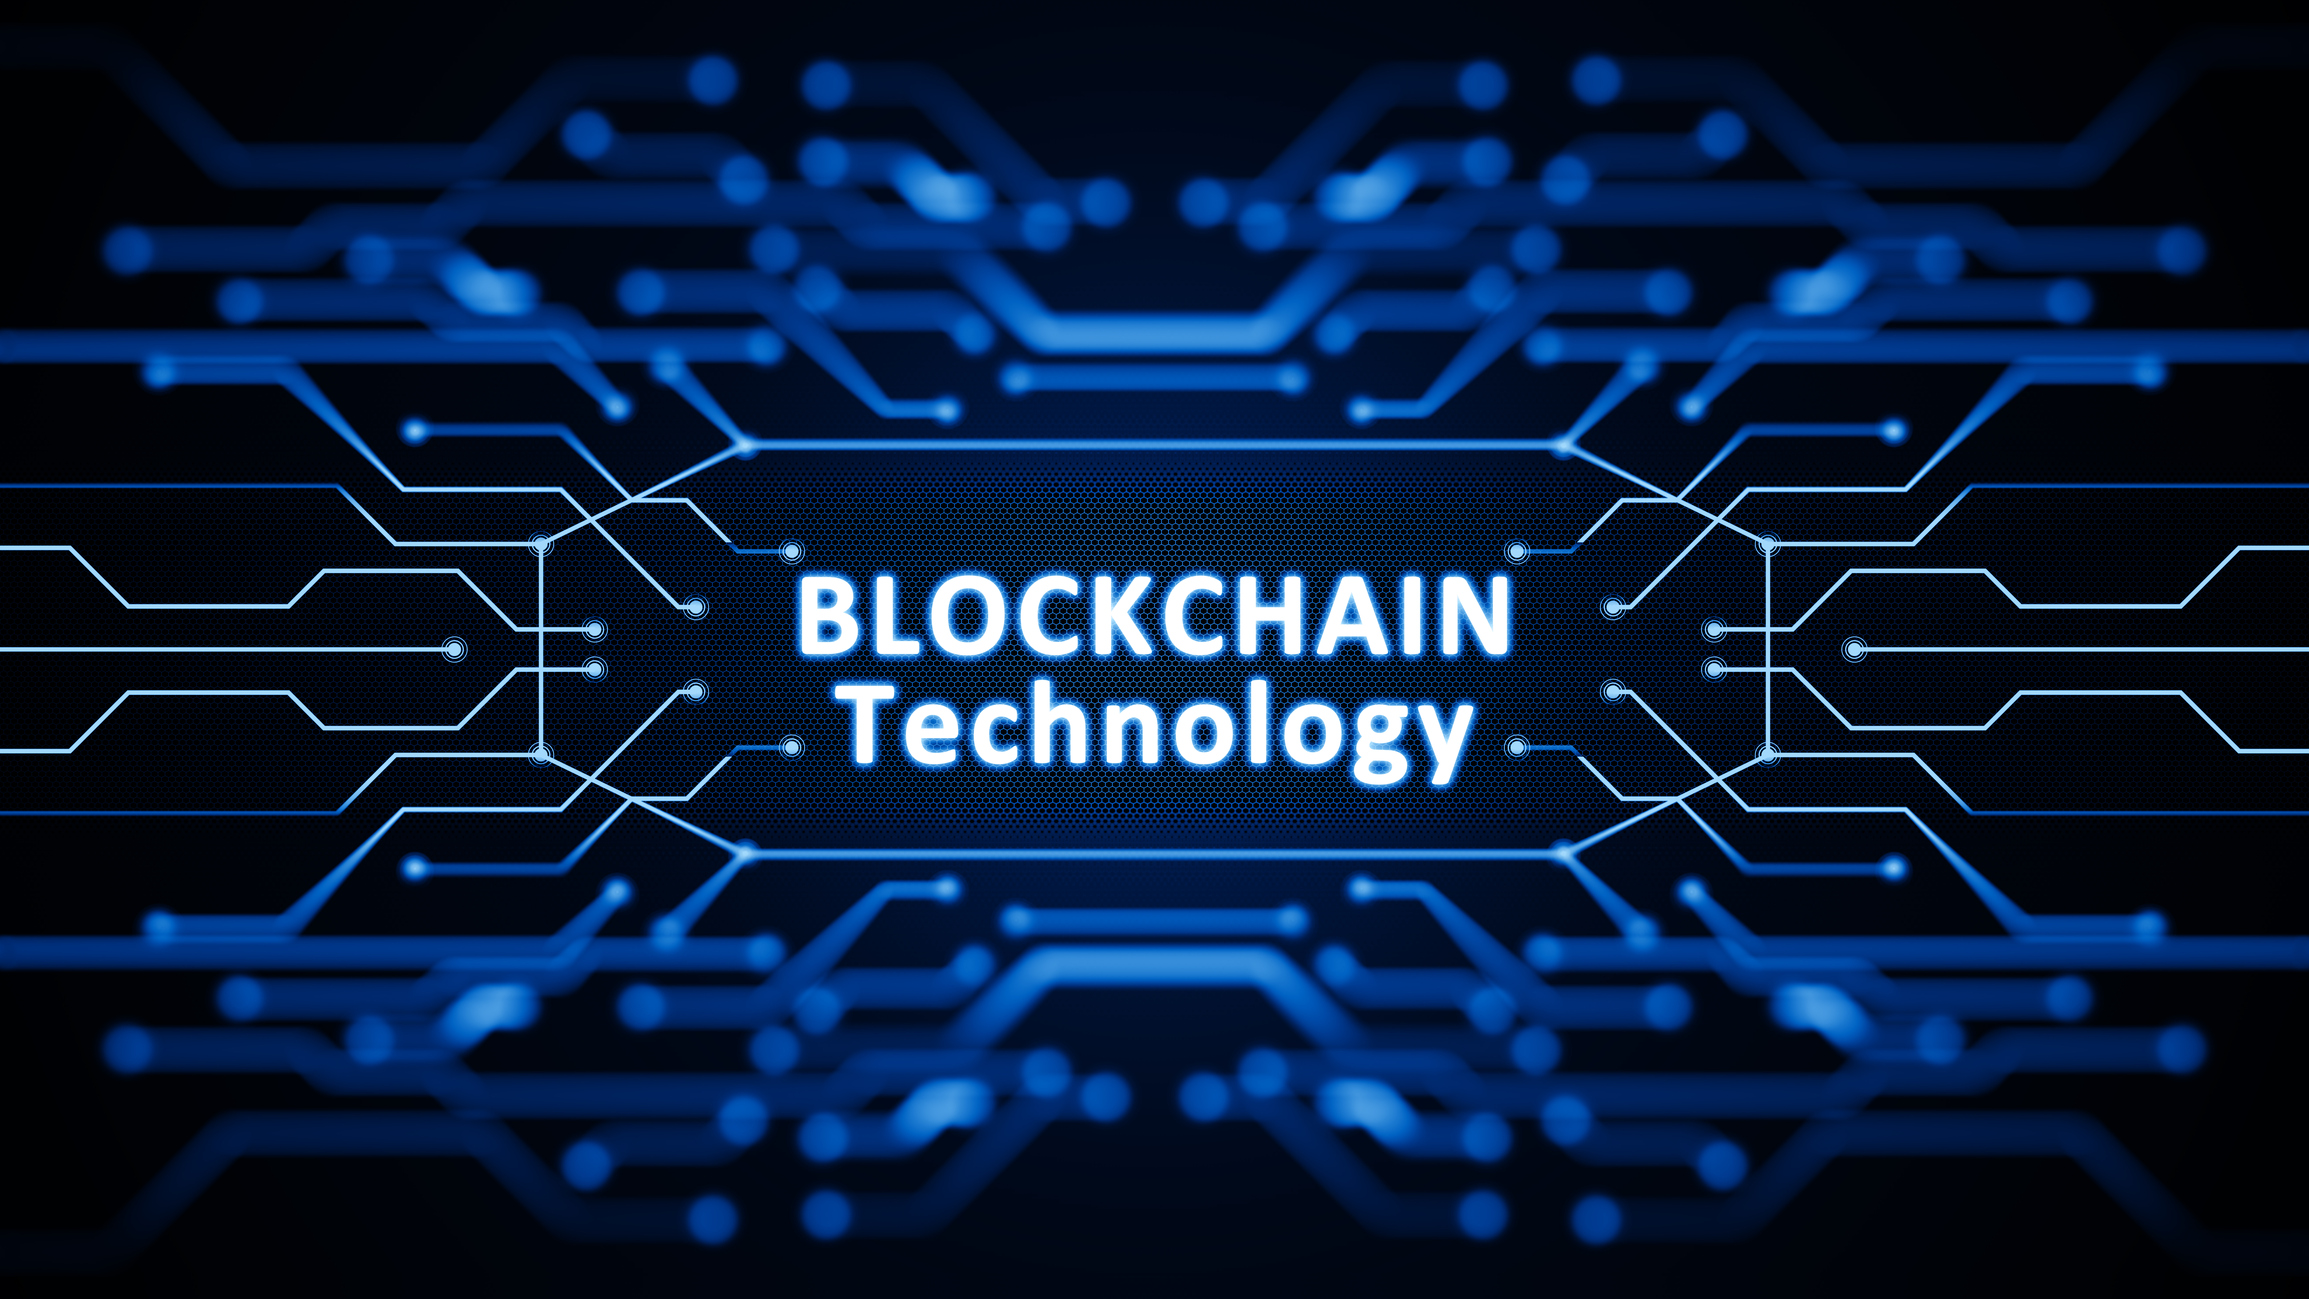 Blockchain technology 2018